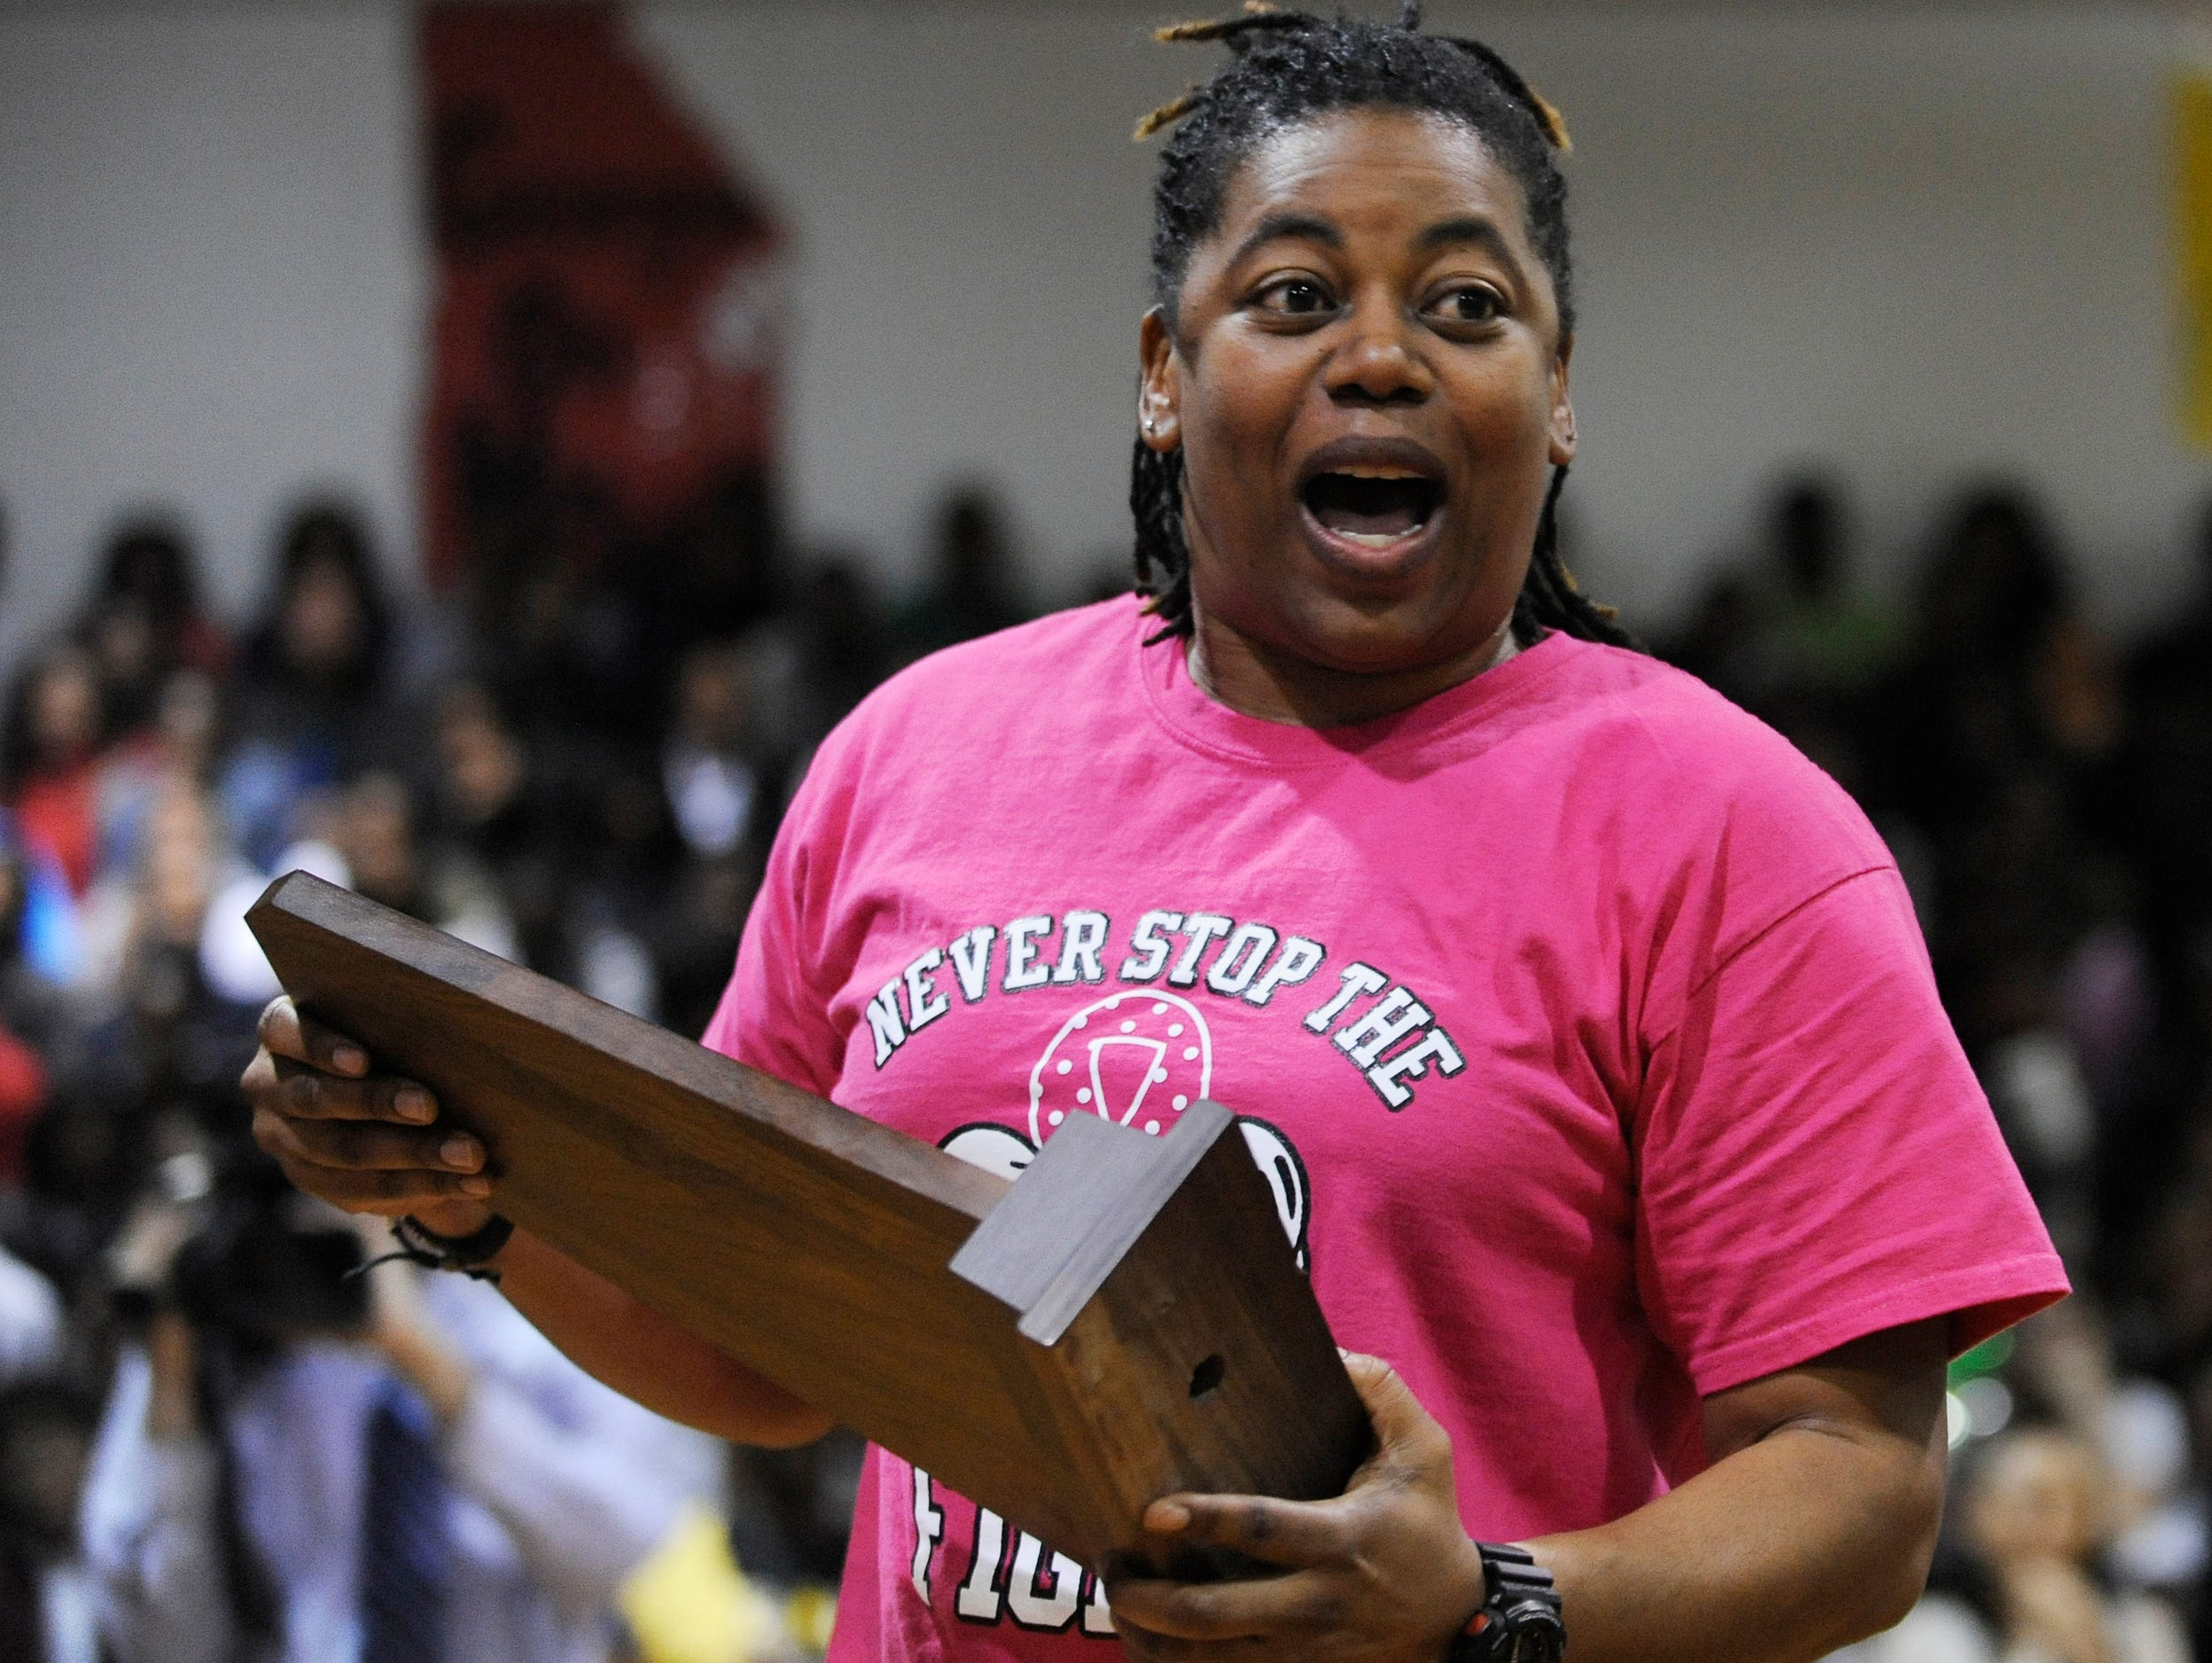 Jeff Davis girls basketball coach LaKenya Knight holds the 7A State Championship Trophy as the team is honored during a ceremony at the school in Montgomery, Ala. on Thursday March 5, 2015.